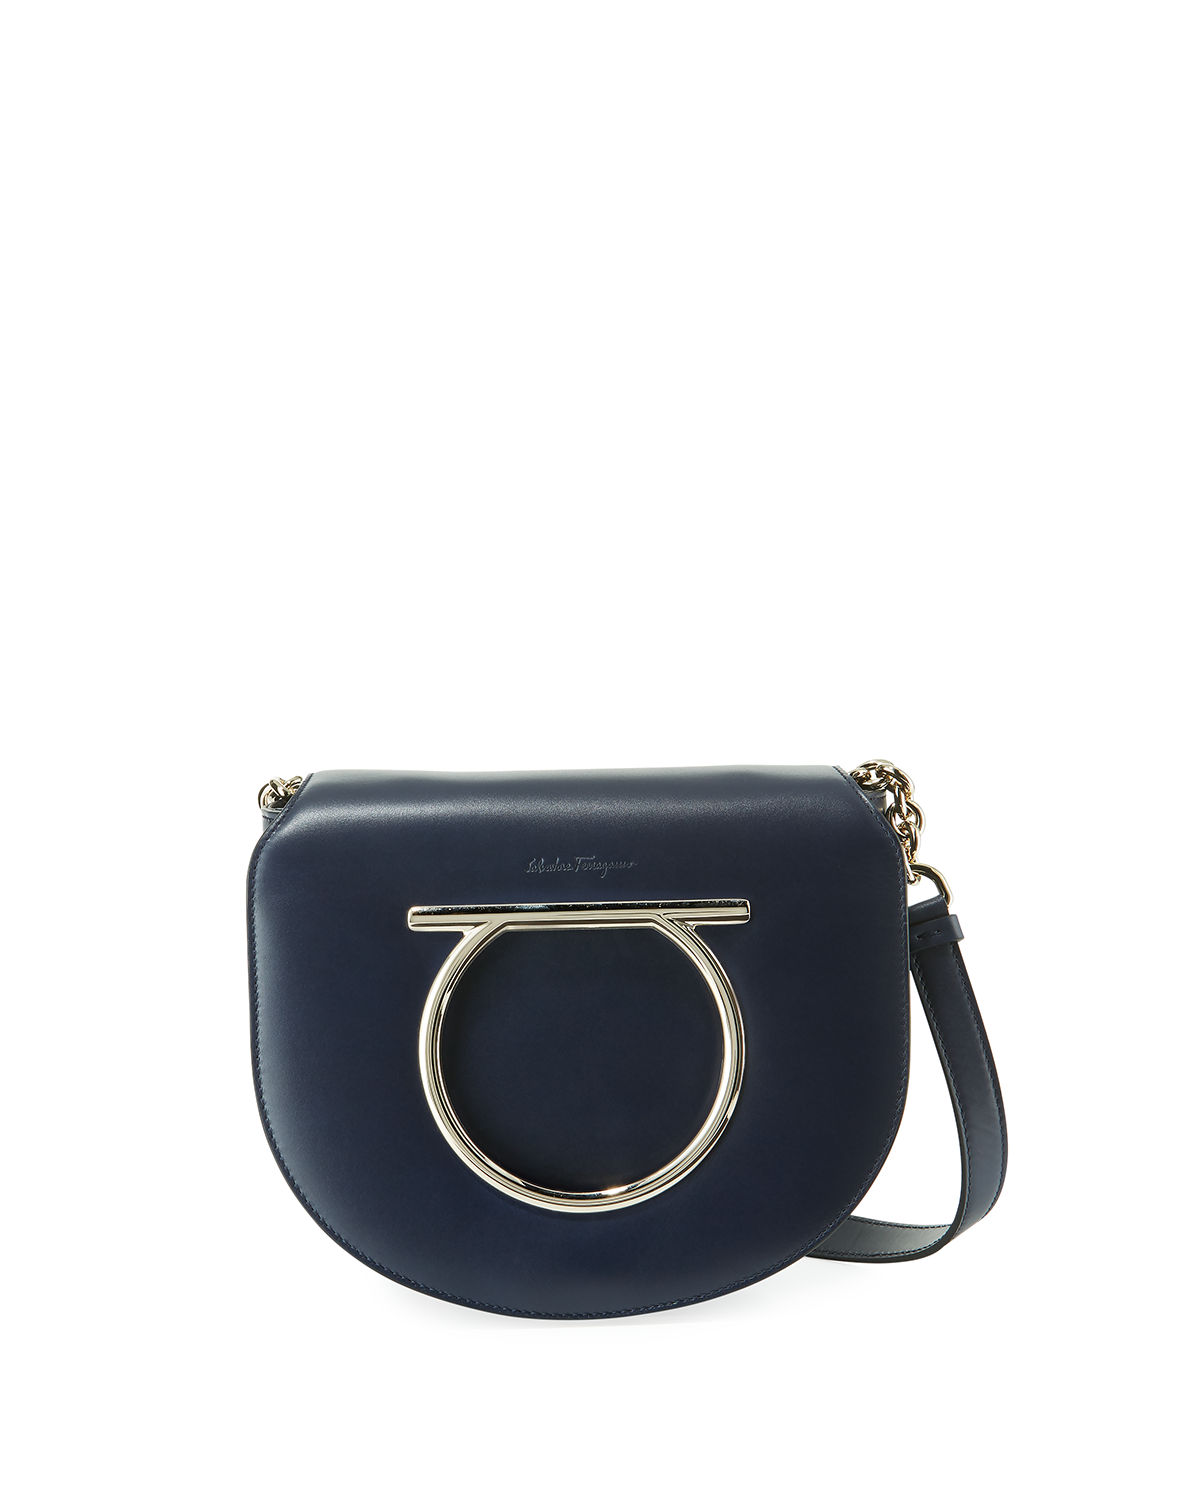 Gancio Vela Leather Shoulder Bag